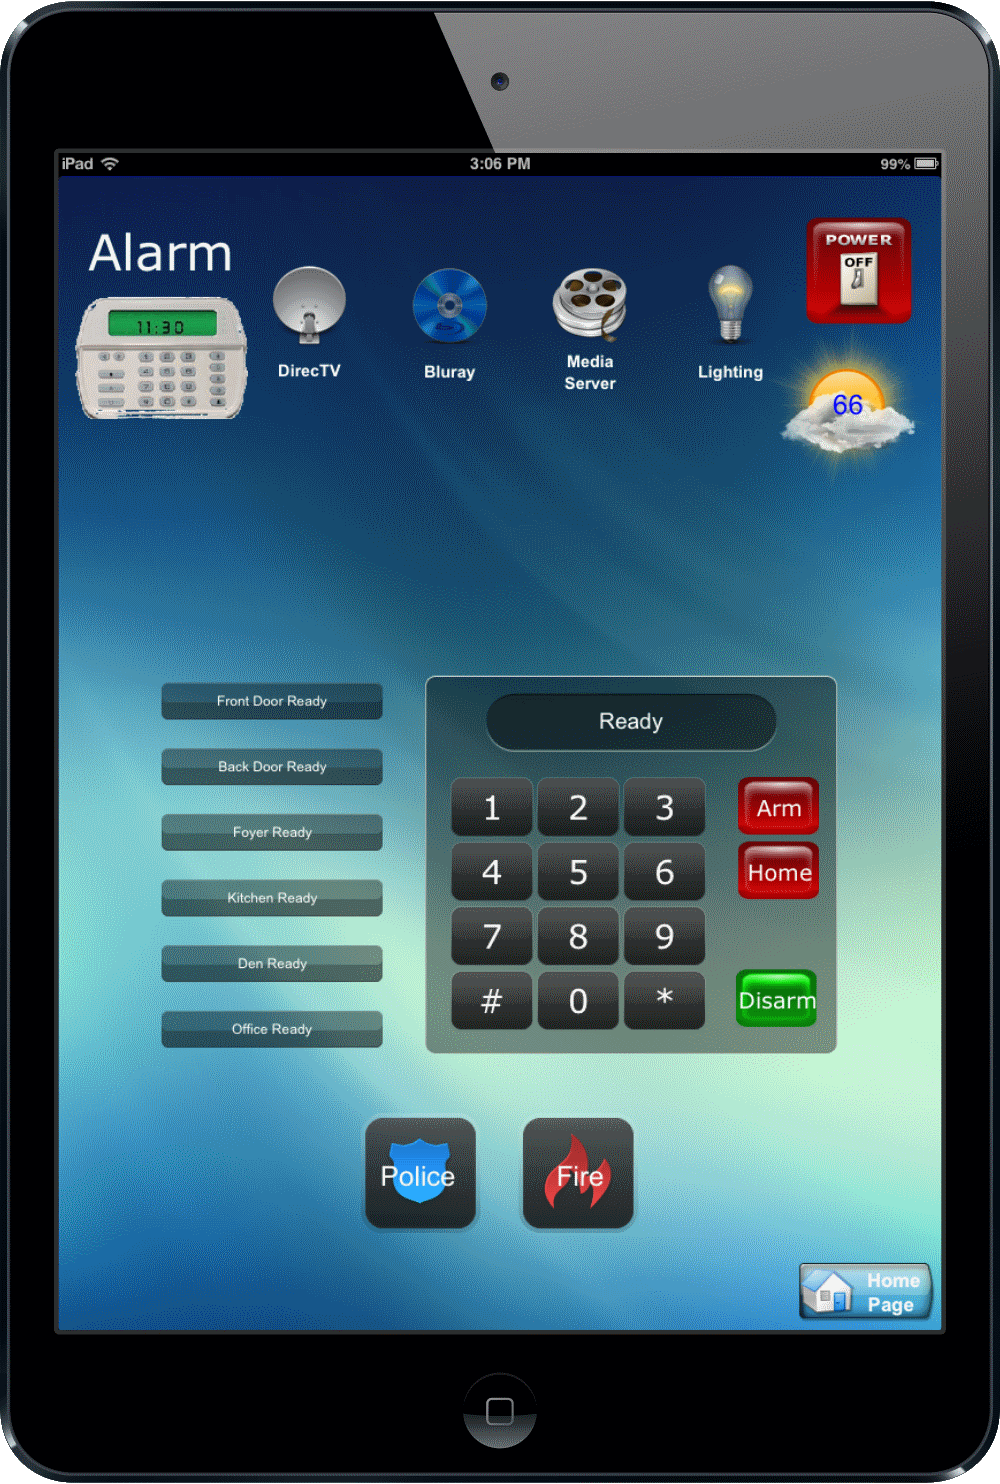 Universal Ipad Remote - Nyack, NY - HV Home Media - Hudson Valley Home Media - Alarm System Turn on and off - Lock front door - panic button - call fireman or call police